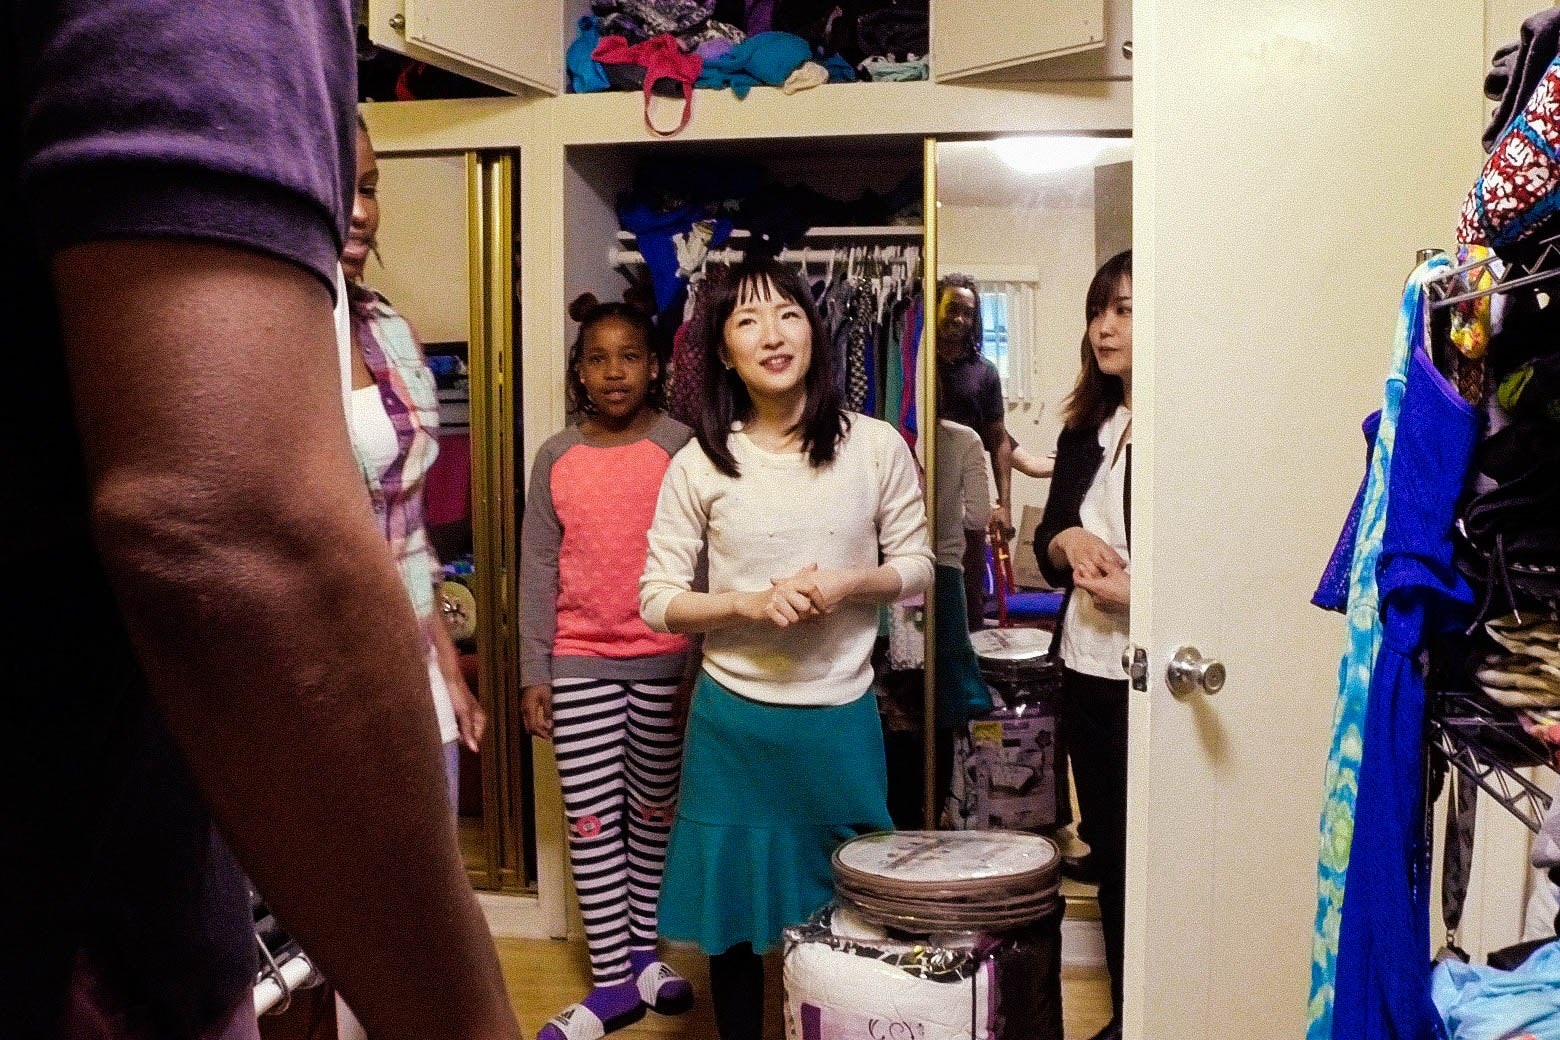 KayCi Mersier and Marie Kondo next to a closet, rack, and cabinet full of clothes.